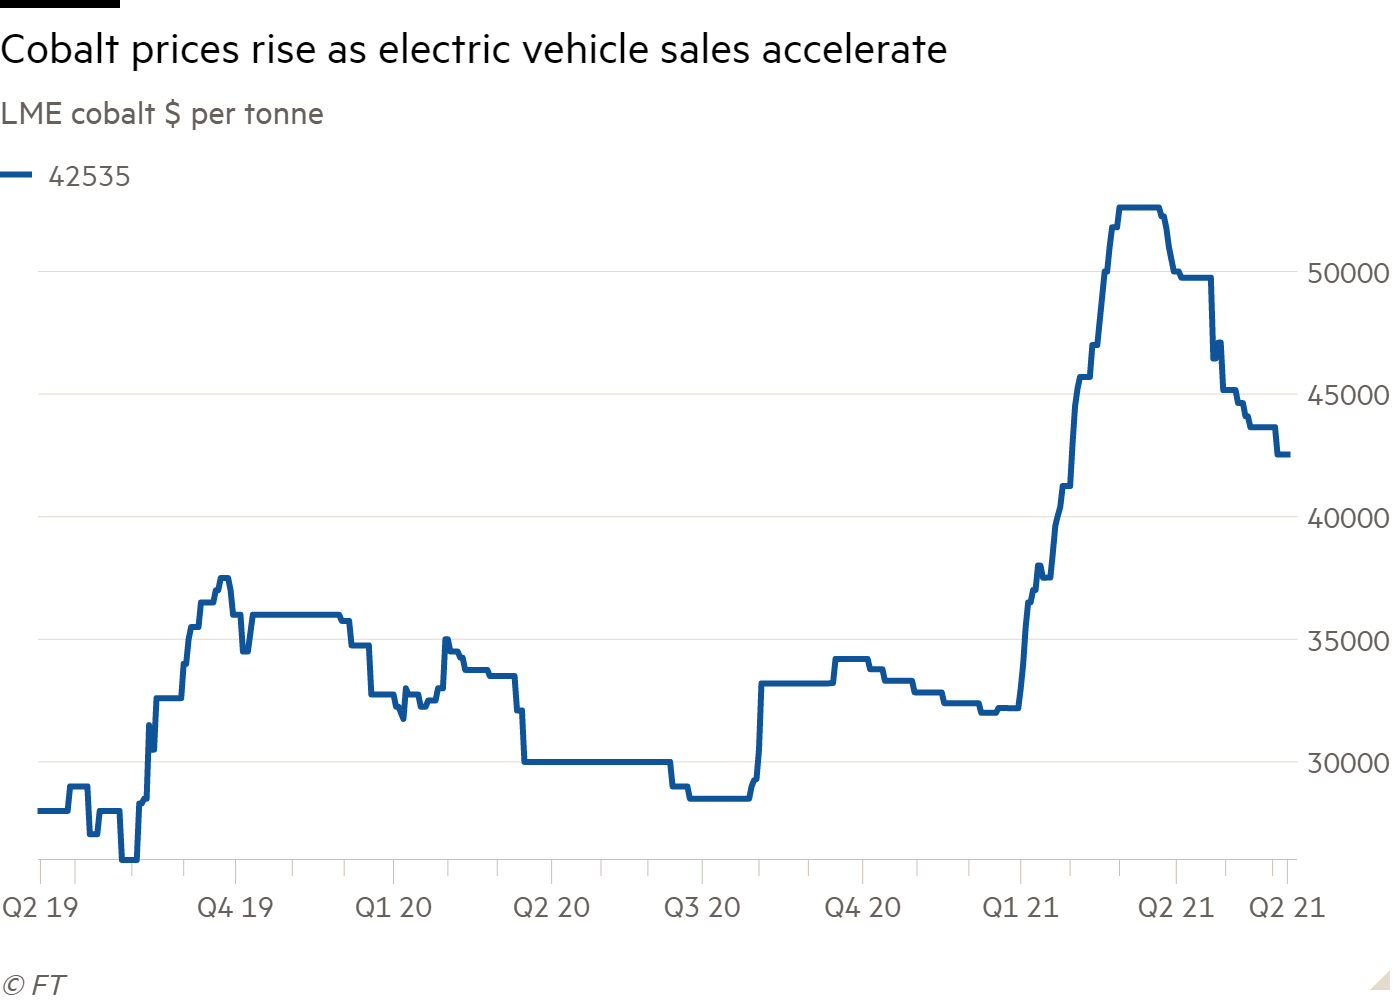 Line chart of LME cobalt $ per tonne showing cobalt prices rise as electric vehicle sales accelerate